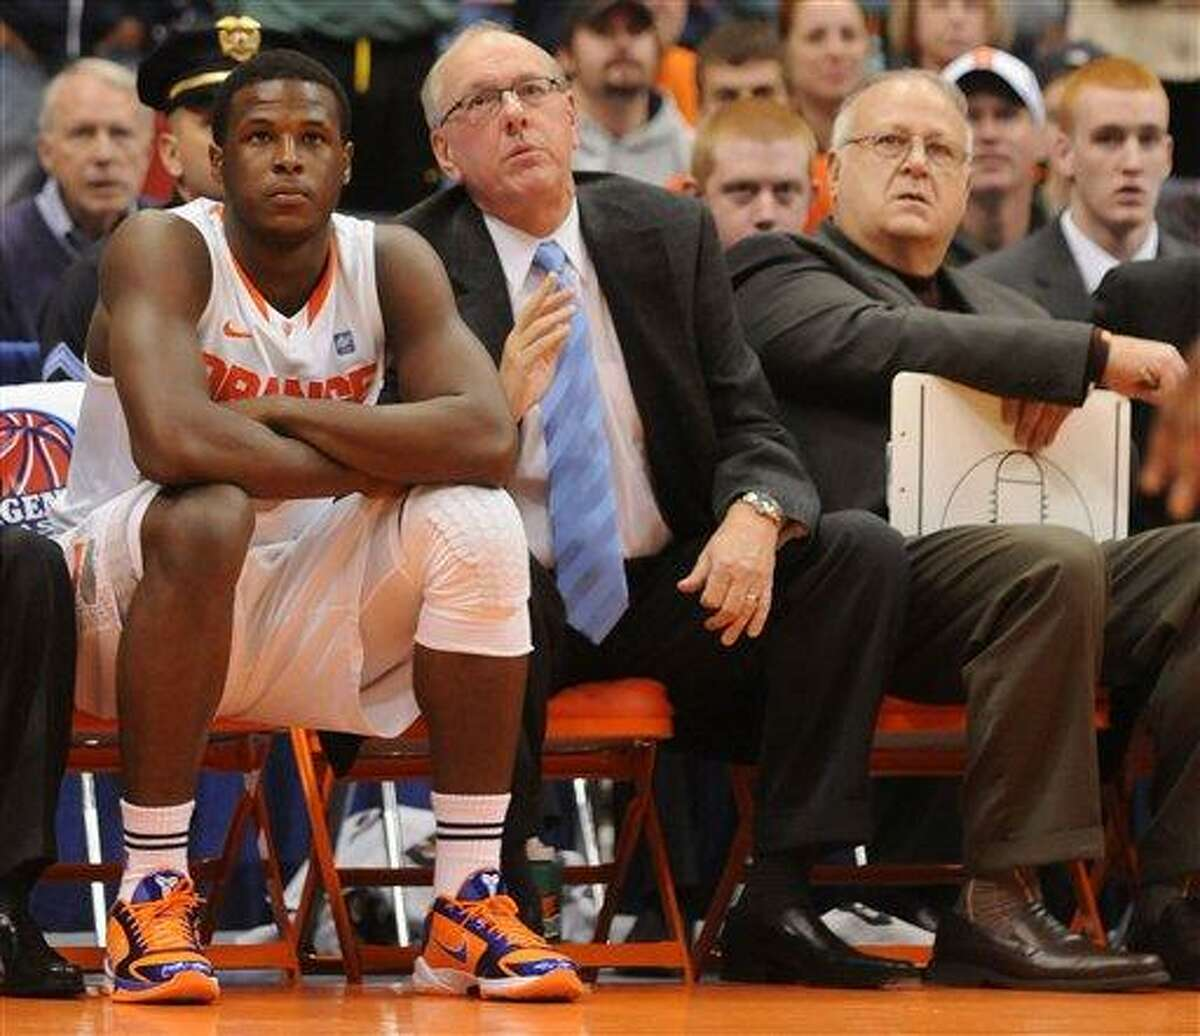 In this Nov. 21, 2010 file photo, Syracuse basketball player Dion Waiter, left, sits on the bench beside head coach Jim Boeheim, center, and assistant coach Bernie Fine, right, during a game against William & Mary, in Syracuse, N.Y. Fine was placed on administrative leave Thursday, Nov. 17, 2011 after old child molesting allegations resurfaced, just two weeks after a child sex abuse scandal rocked Penn State. (AP Photo/The Post Standard, Dennis Nett) INTERNET OUT TV OUT MAGS OUT NO ARCHIVE